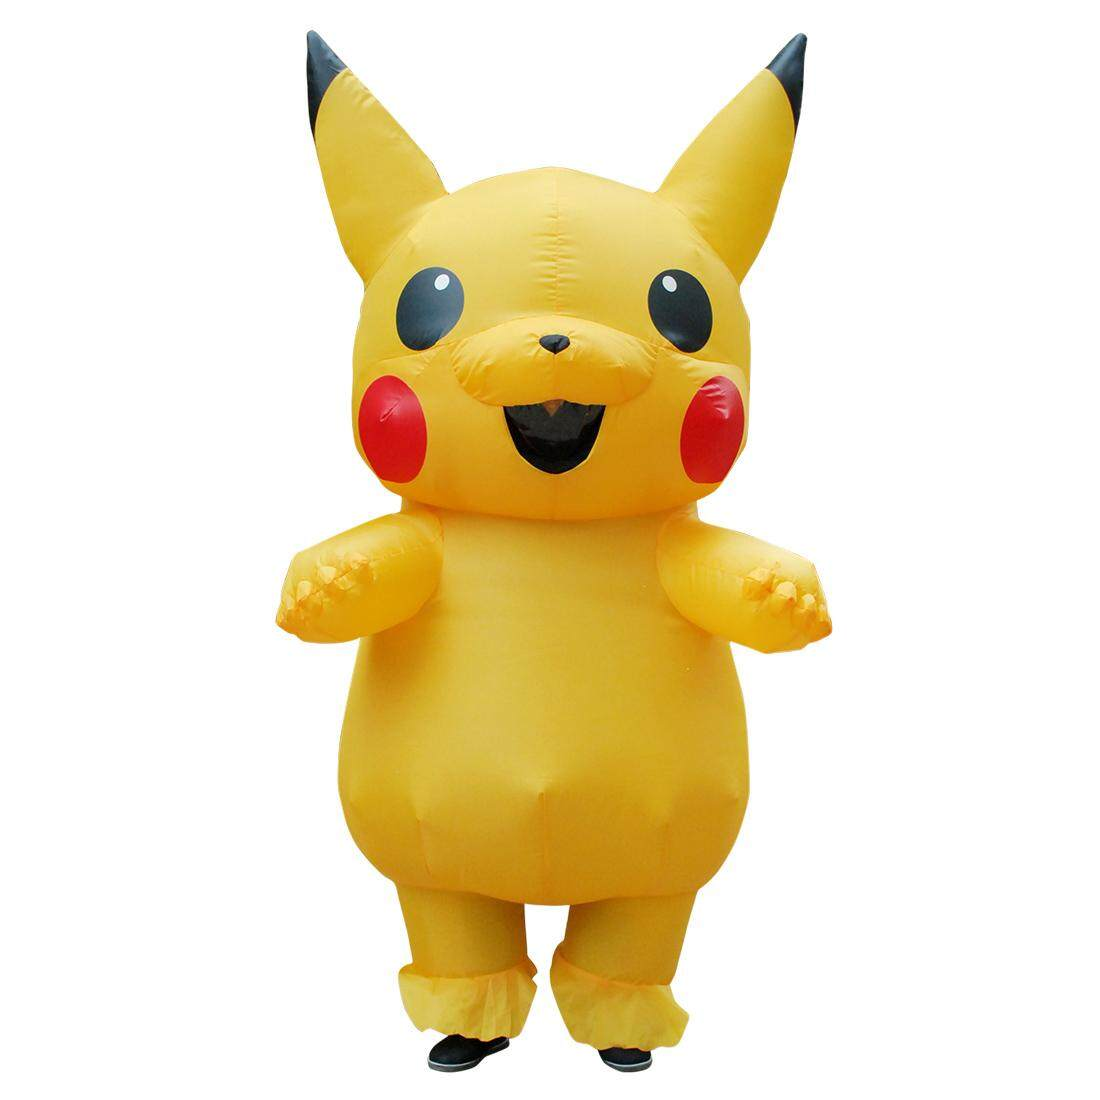 Christmas Costume Inflatable Pikachu Costumes Halloween Costume For Adult - Intl By Maxky.